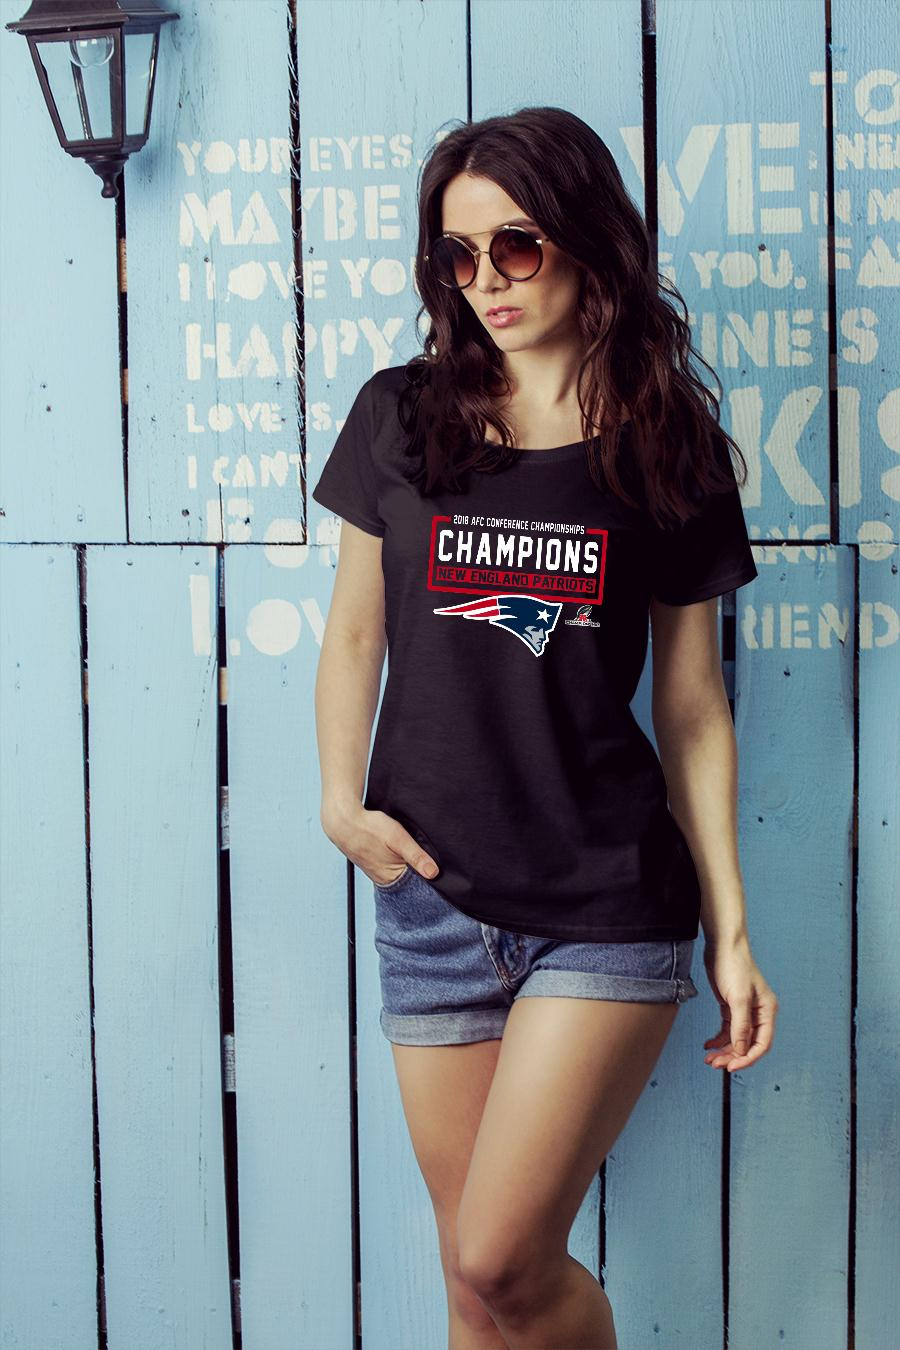 Patriots Champions AFC Conference Championships Season 2018 2019 shirt ladies tee official